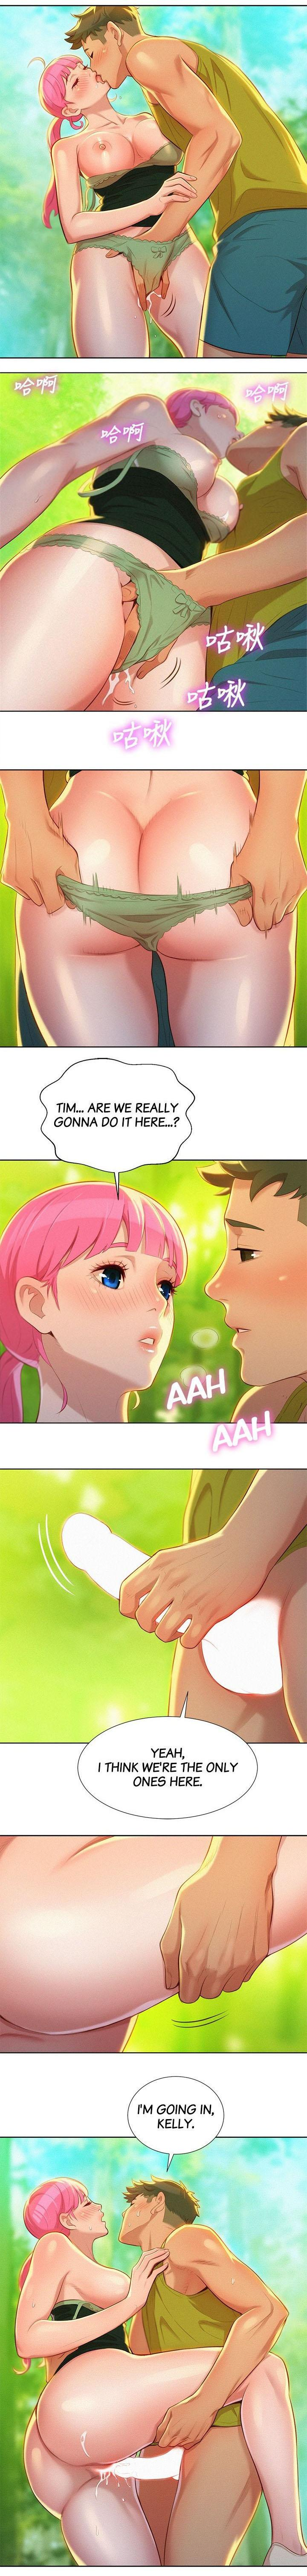 What do you Take me For? Ch.50/? 227